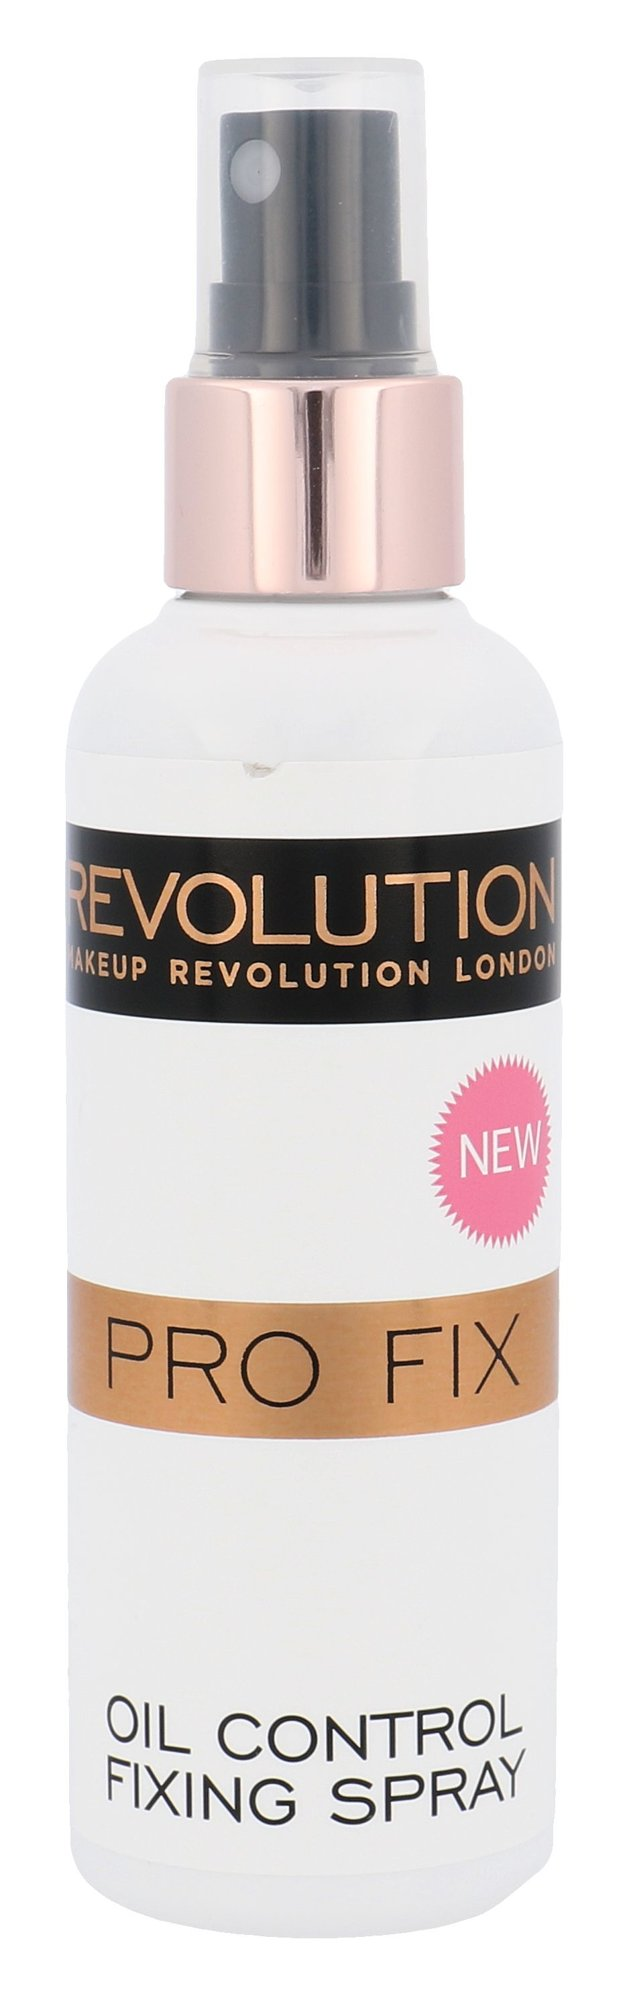 Makeup Revolution London Pro Fix Cosmetic 100ml